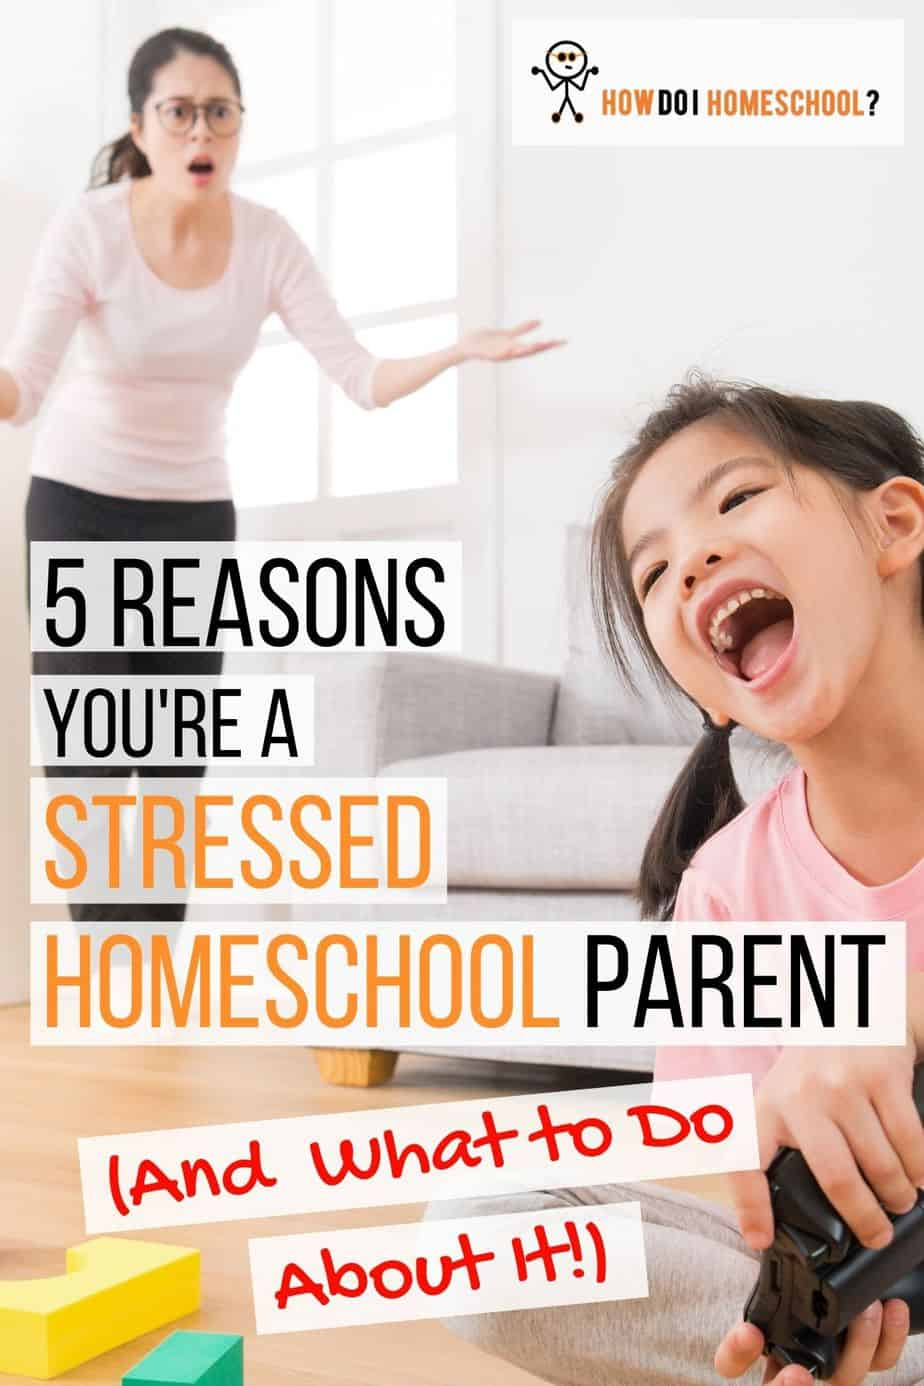 5 Reasons You Are a Stressed Homeschool Parent. (1)